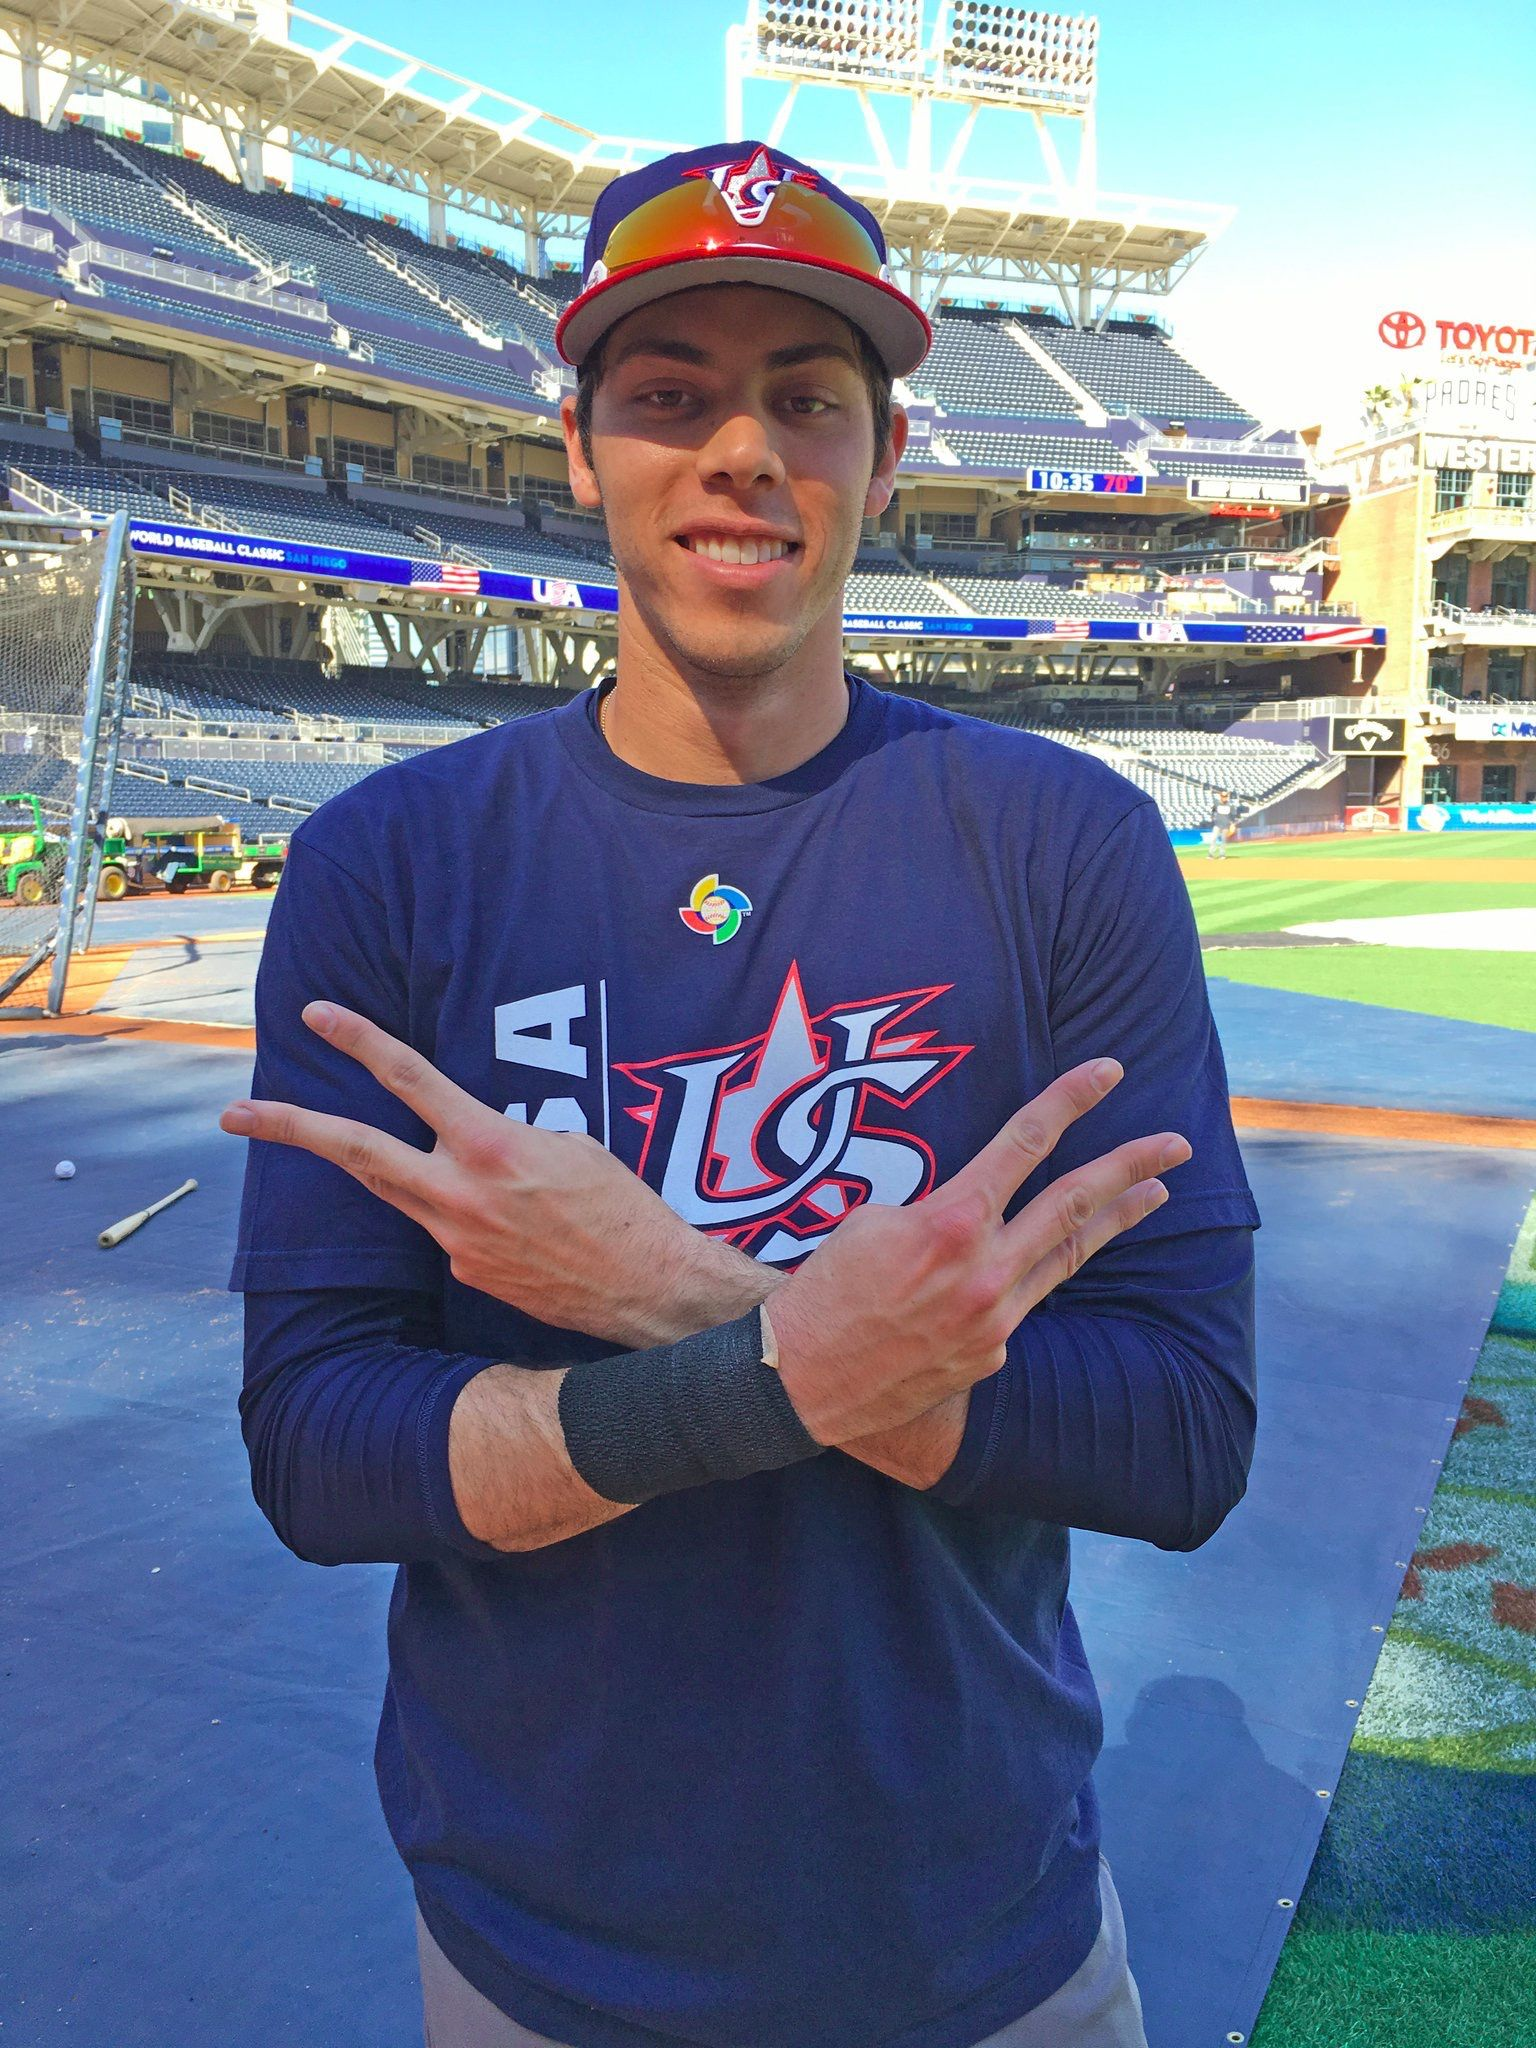 Pin by Chaise Powers on Baseballlllll   Christian yelich ...